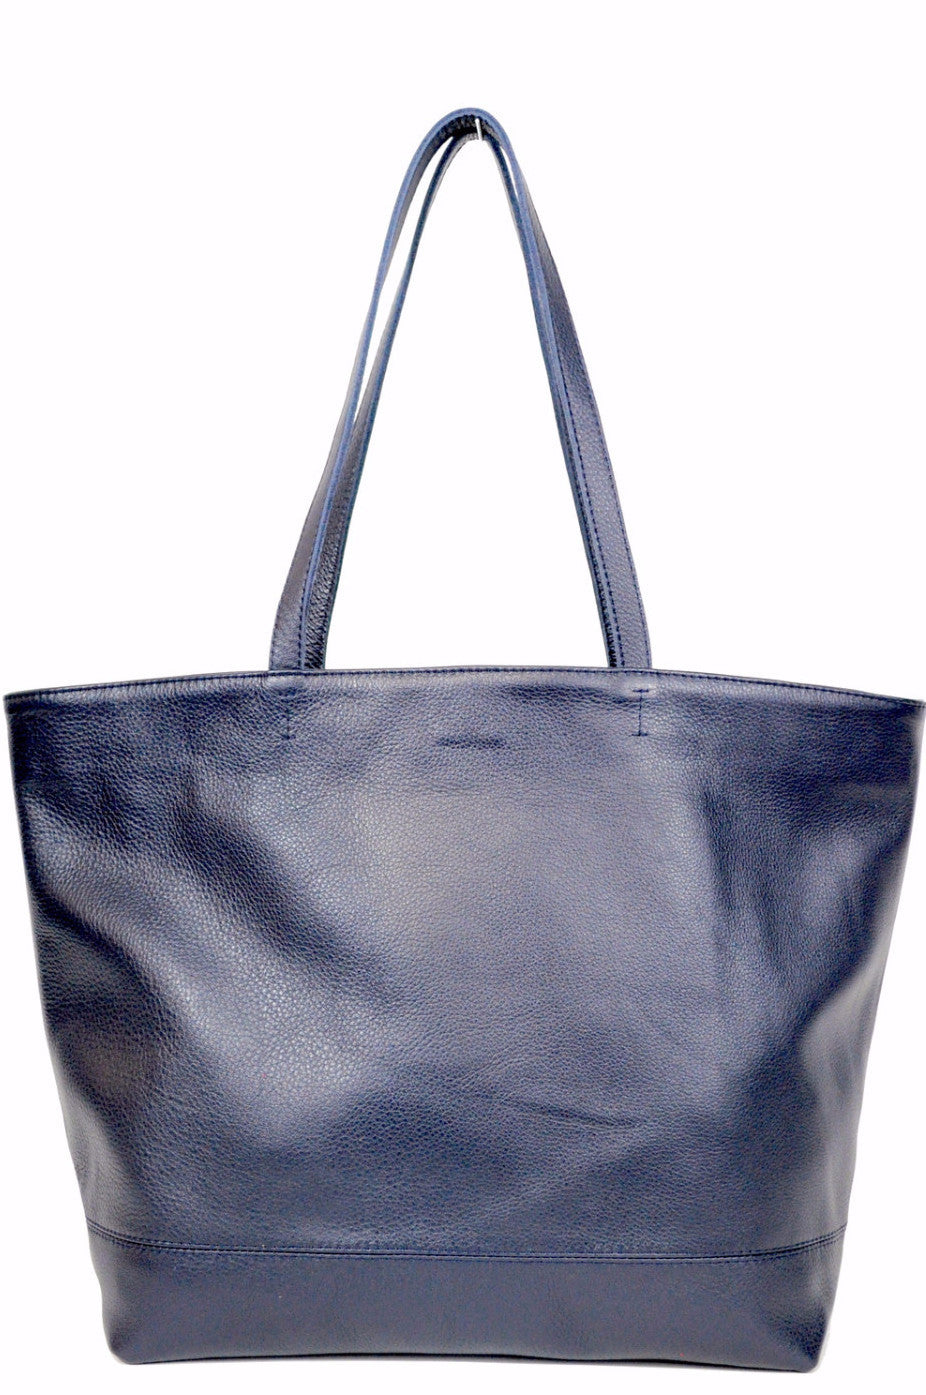 Simple Tote Navy - ShopPositiveElements.com